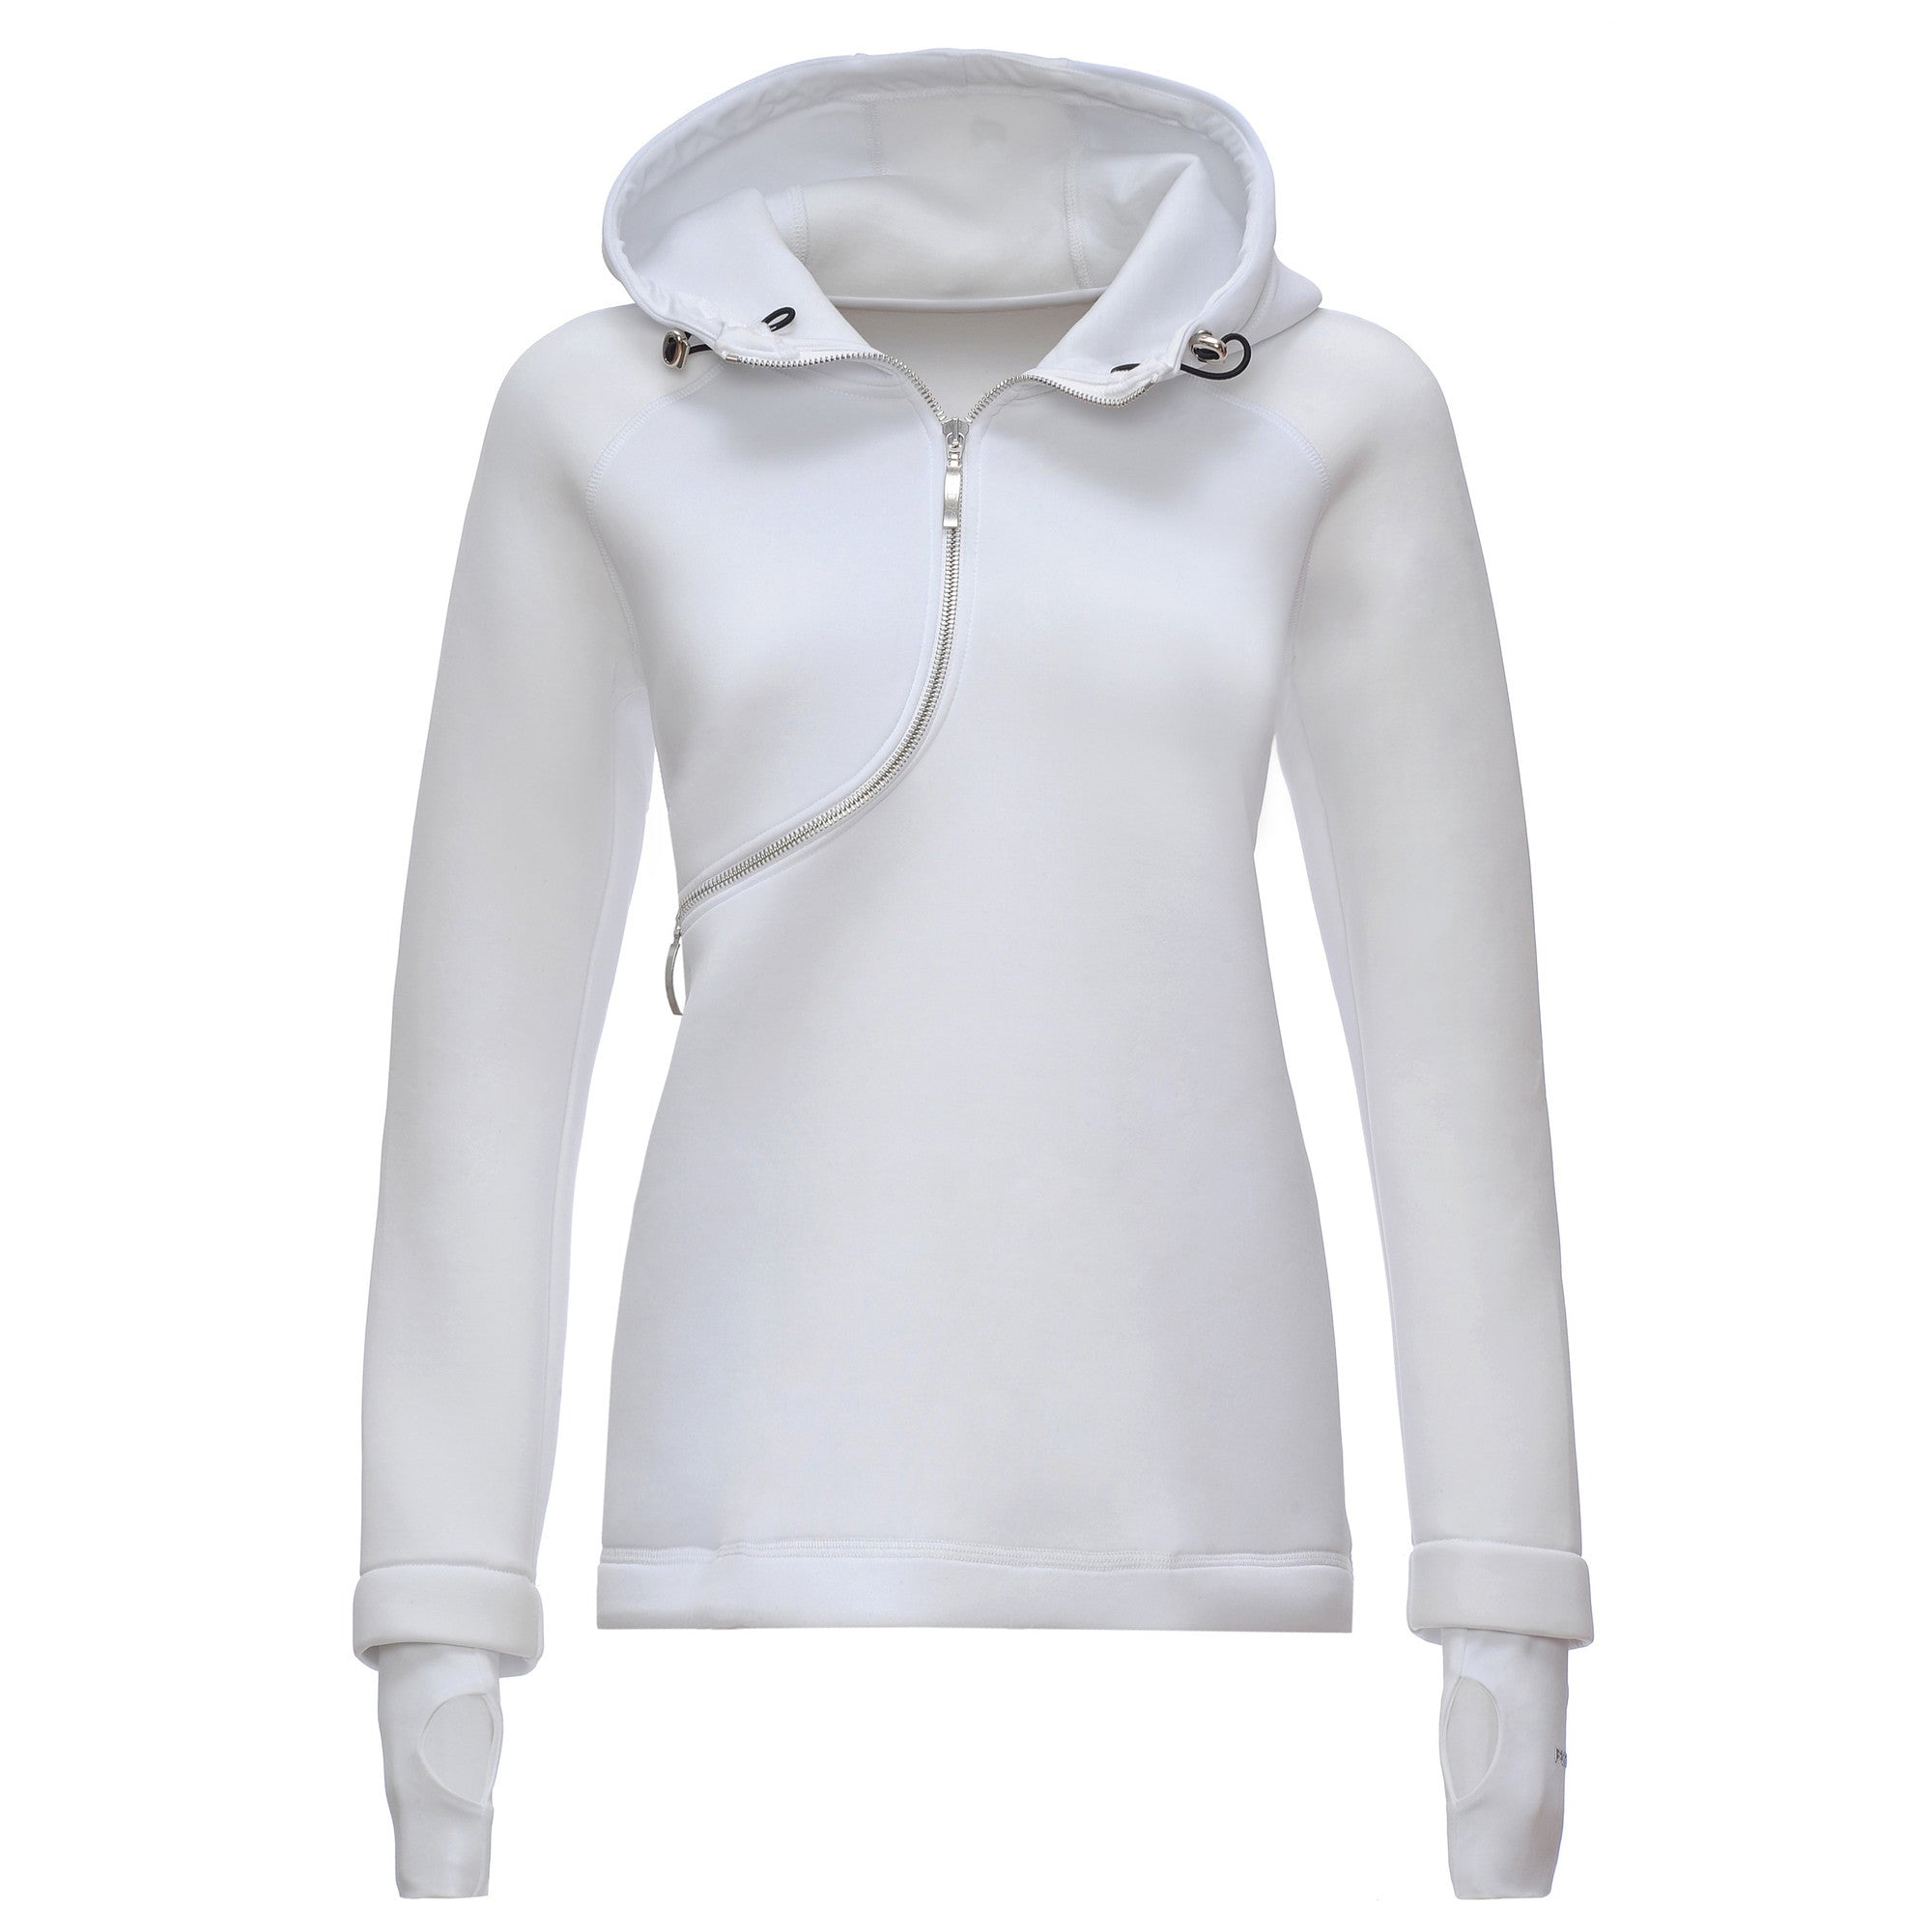 FREDDY D.I.W.O CURVE BREATHABLE SWEATSHIRT - White - LIVIFY  - 1